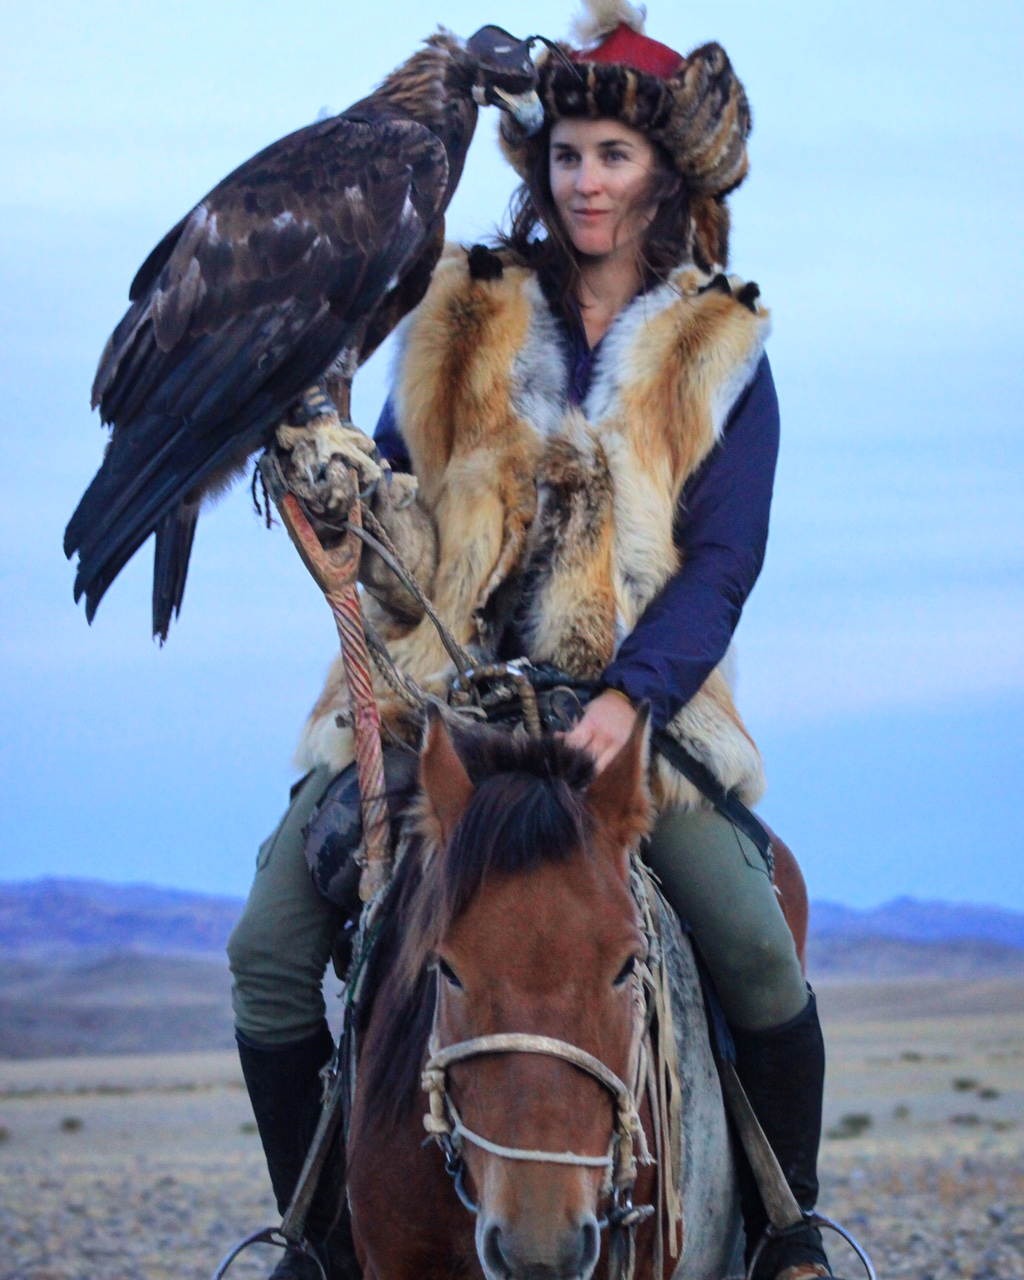 Chloe Phillips-Harris, 28, pictured holding an eagle and riding a horse in Mongolia, who was detained in Kazakhstan when officials refused to acknowledge her New Zealand passport, telling her it was a state of Australia. Supplied 30th November 2016